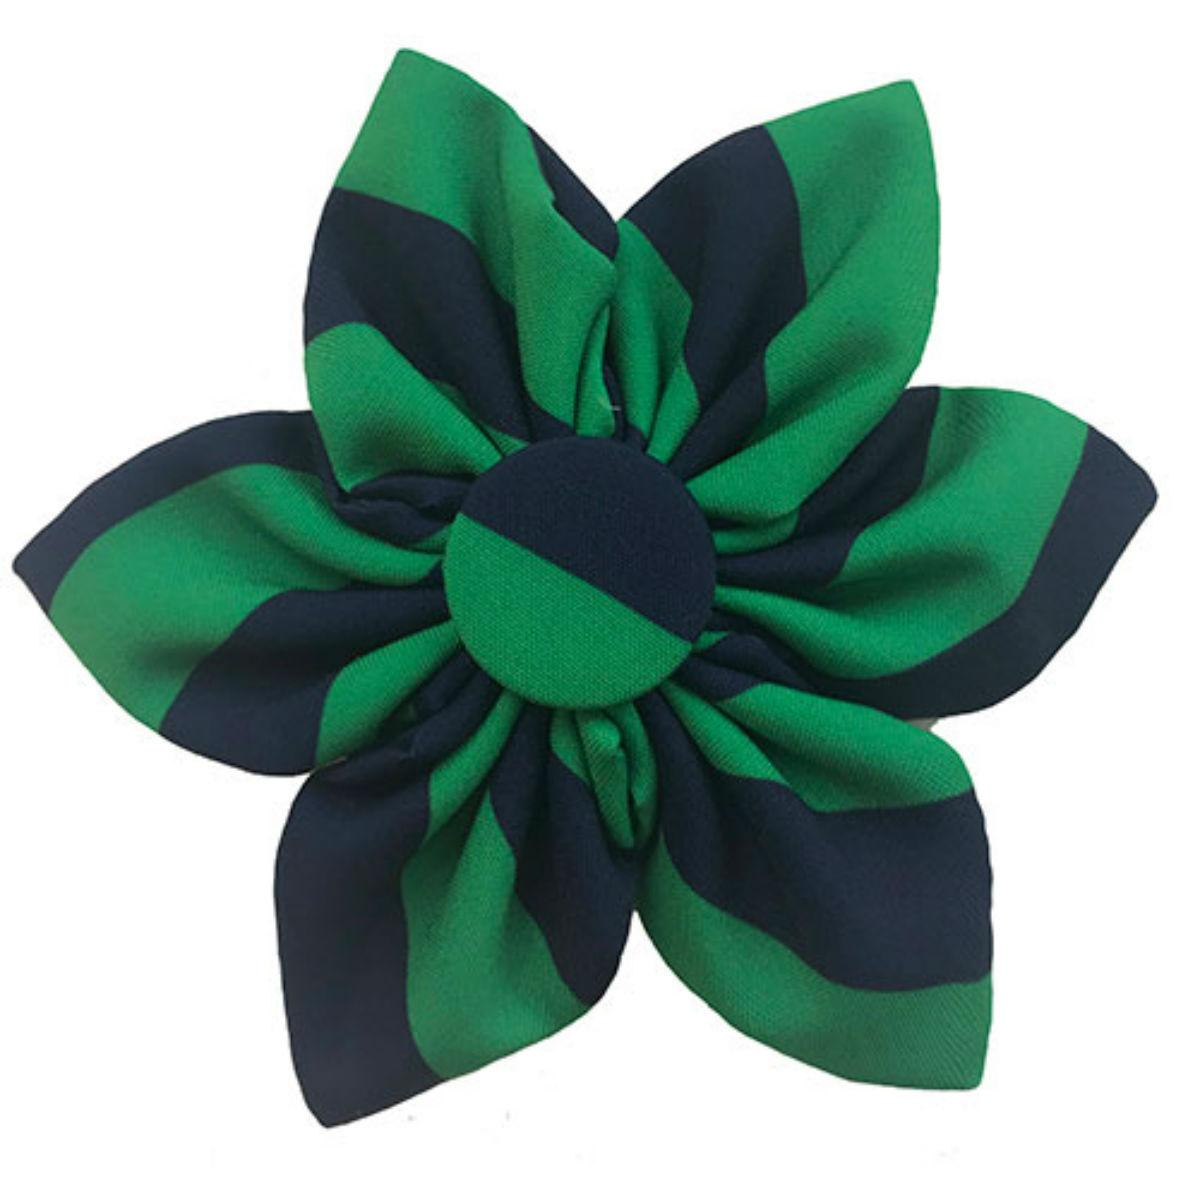 Huxley & Kent Pinwheel Dog and Cat Collar Attachment - Harvey Blue and Green Striped